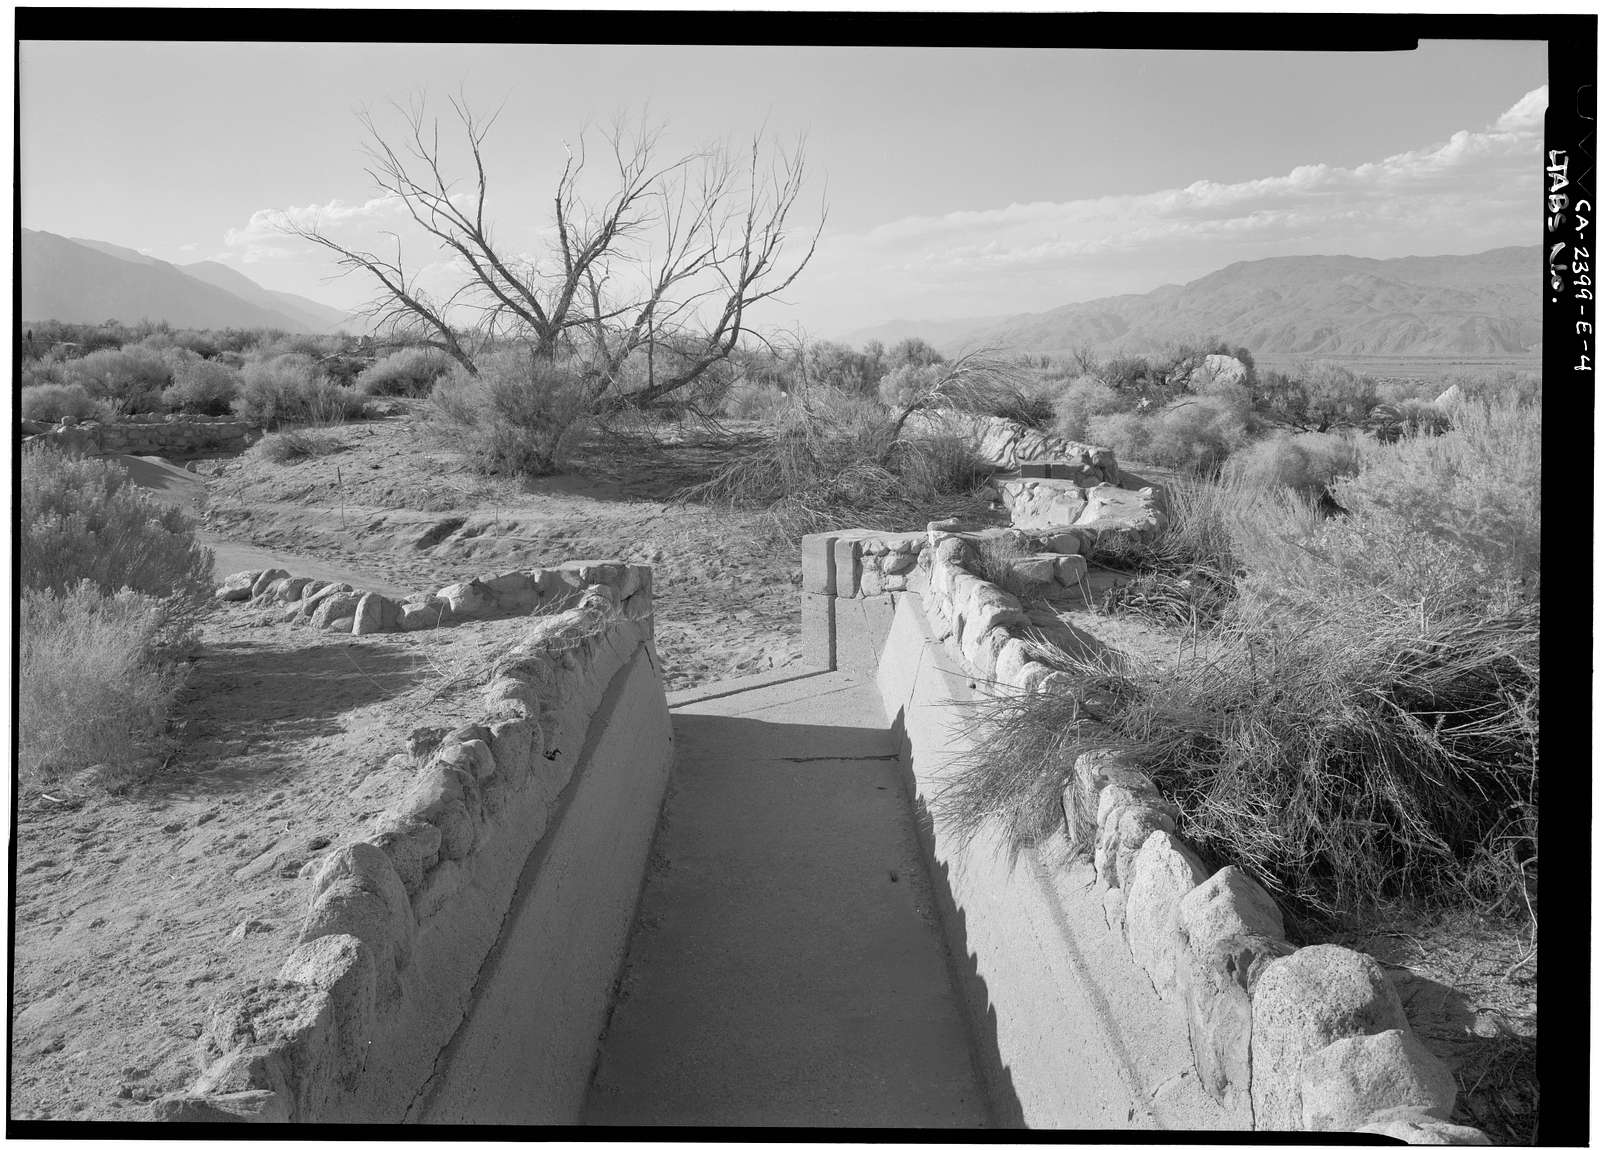 Manzanar War Relocation Center, Reservoir, Independence, Inyo County, CA